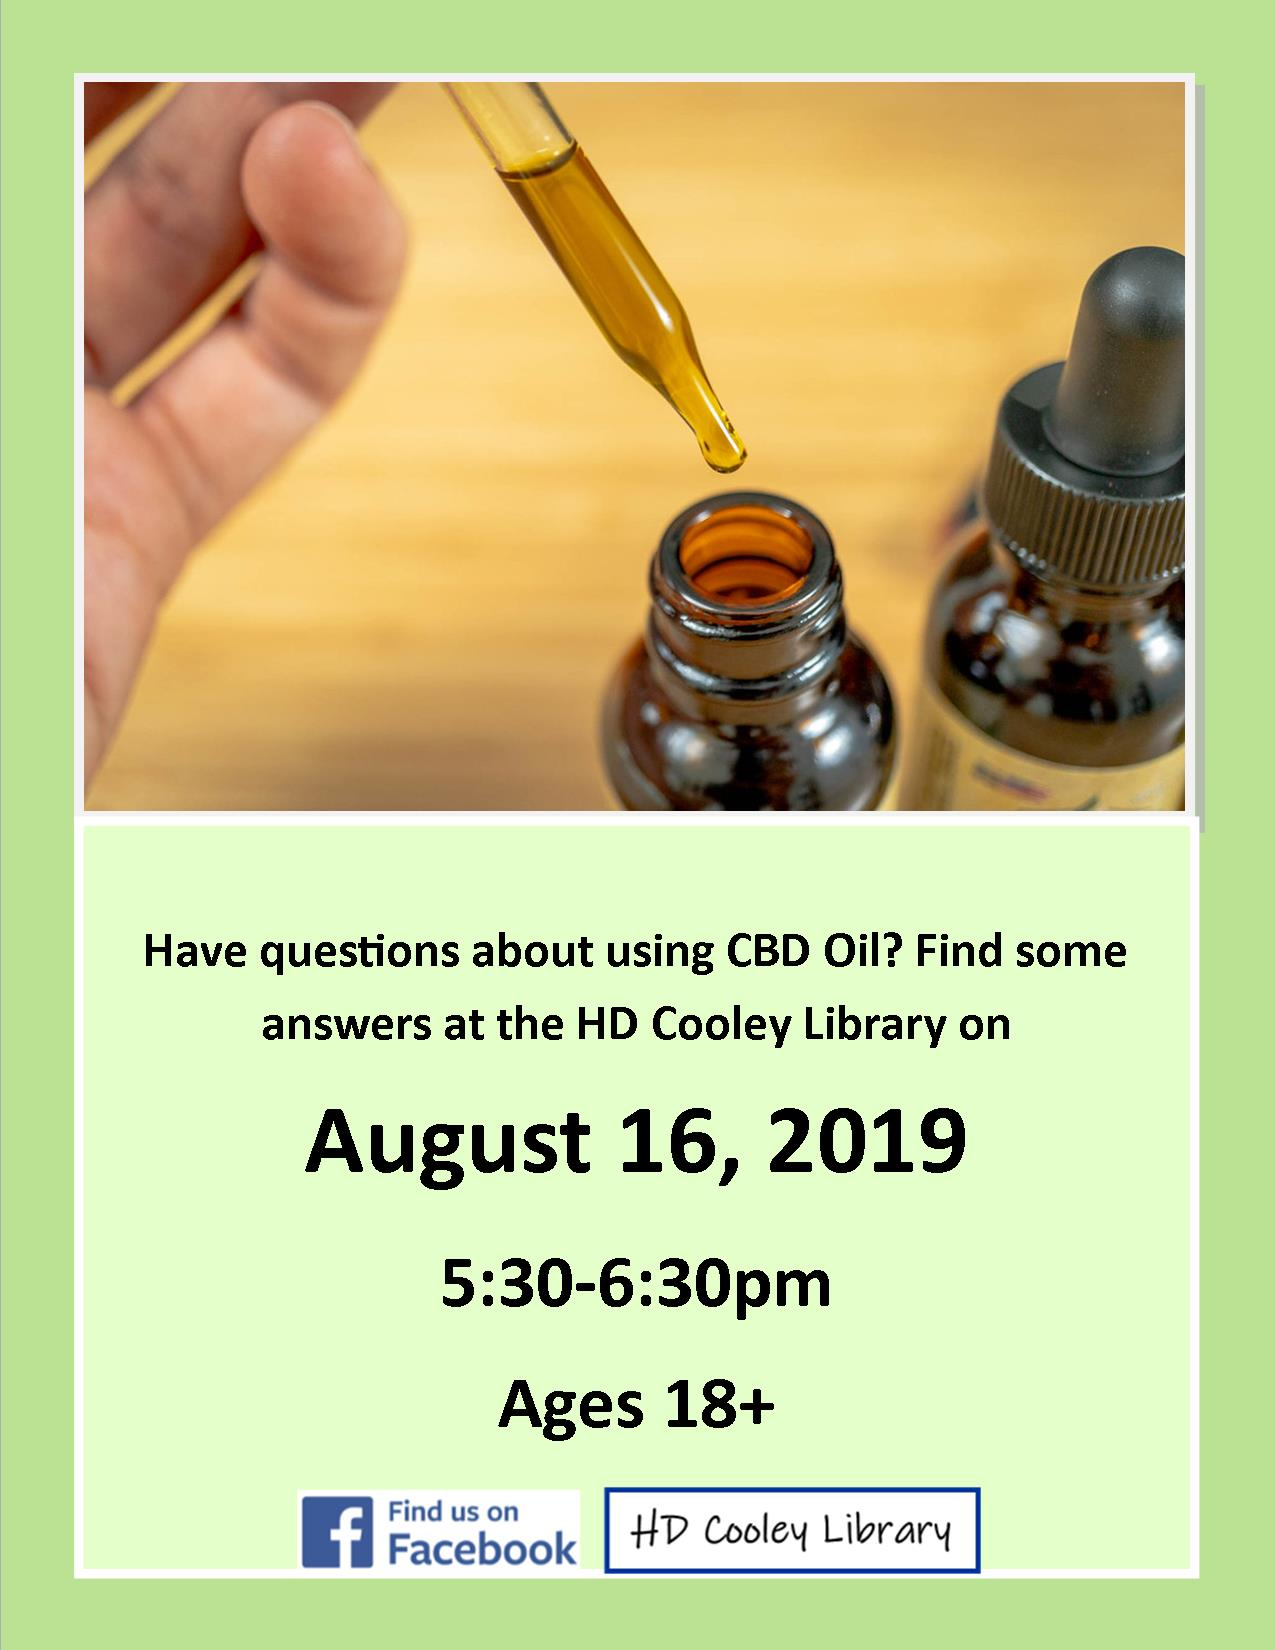 CBD Oil session date and time